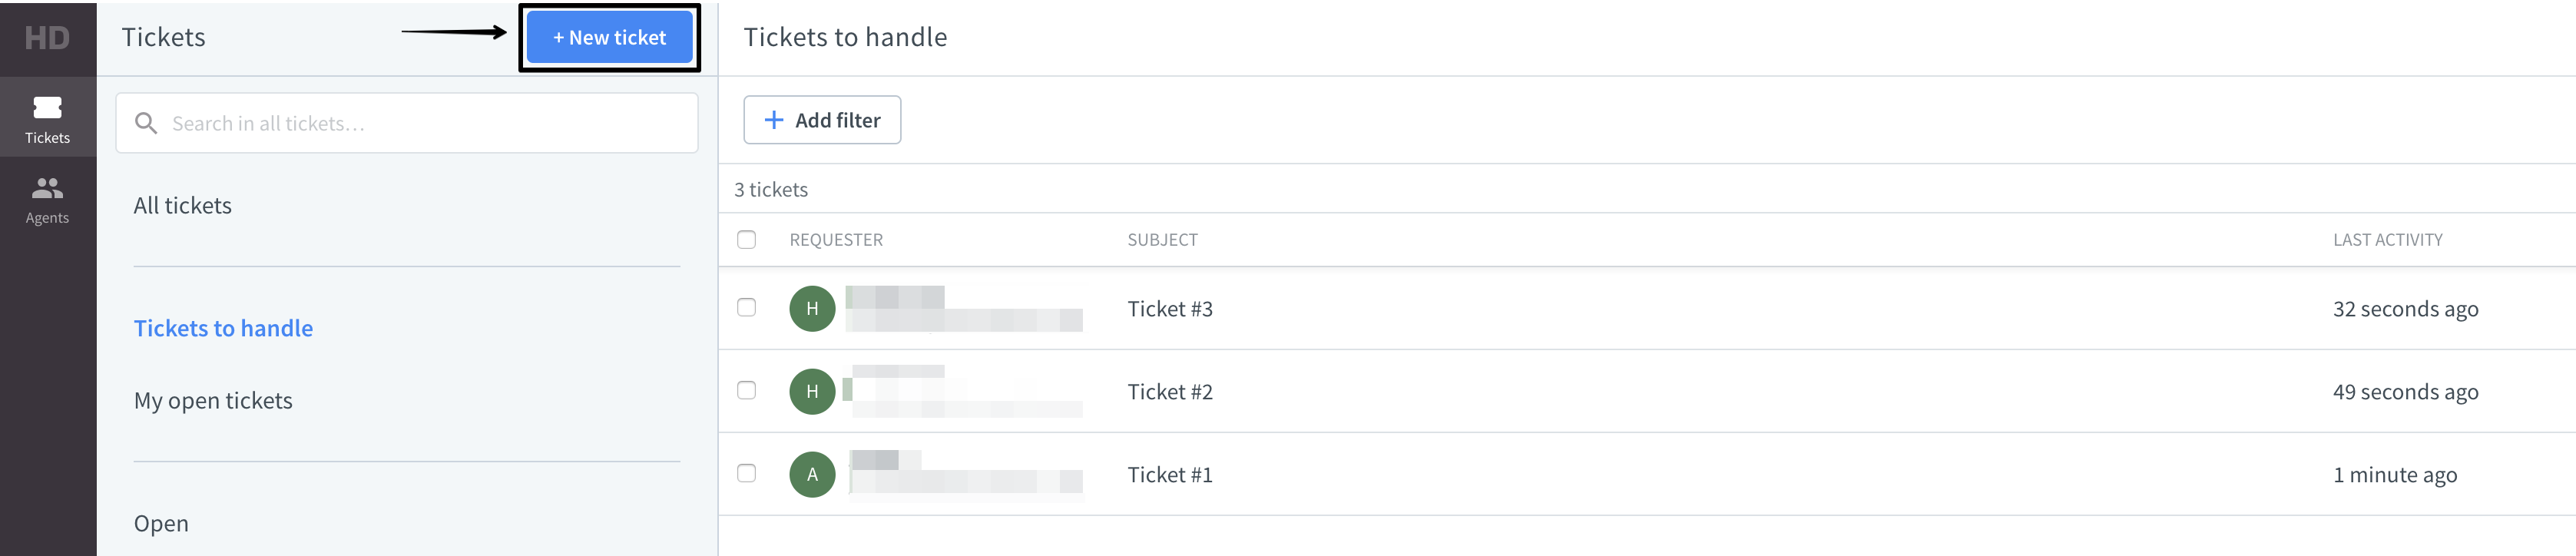 Creating a new ticket in the HelpDesk app